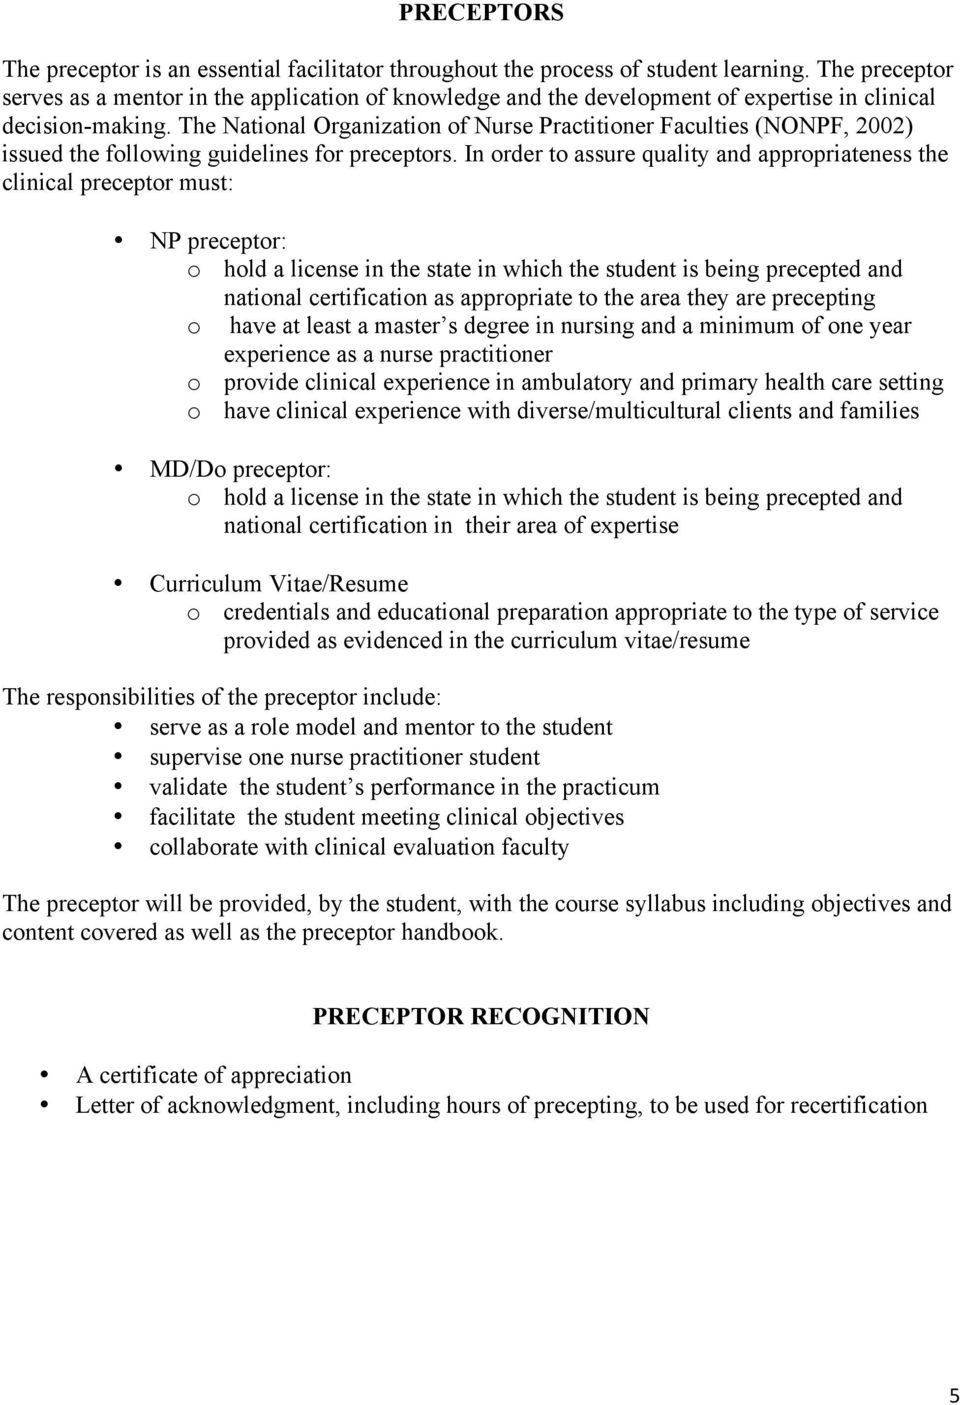 The National Organization of Nurse Practitioner Faculties (NONPF, 2002) issued the following guidelines for preceptors.